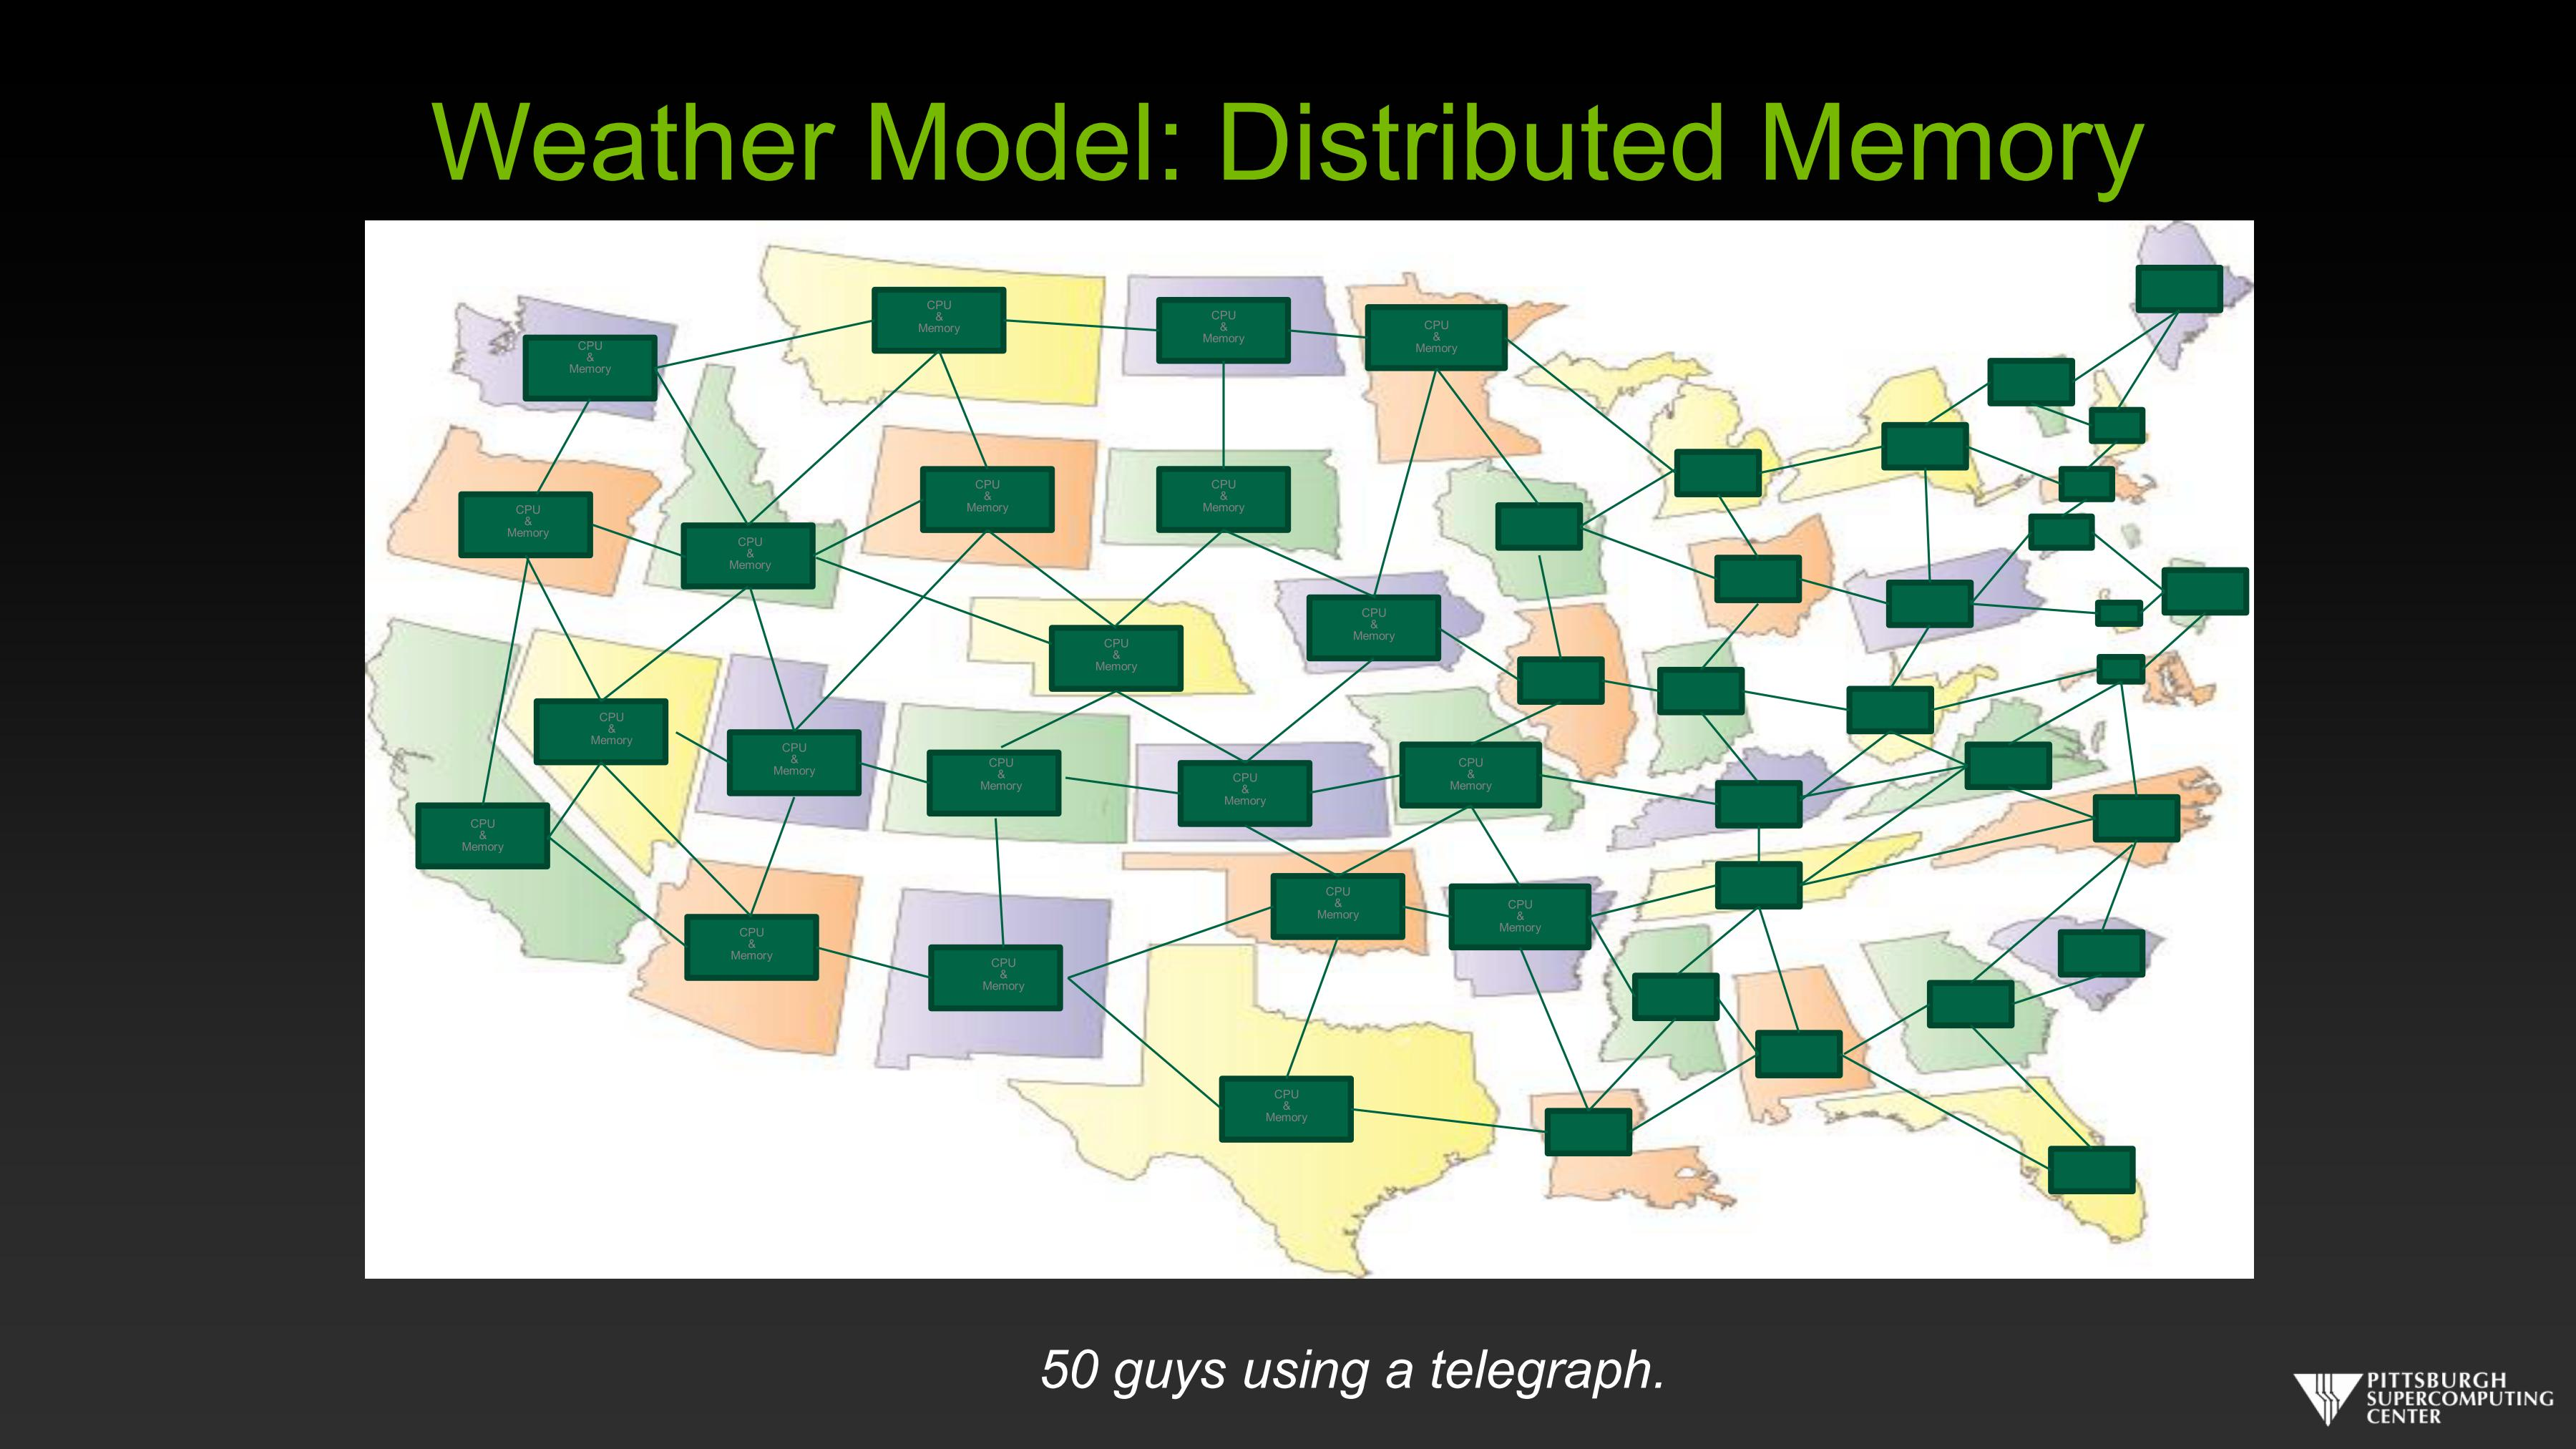 Weather Model: Distributed Memory